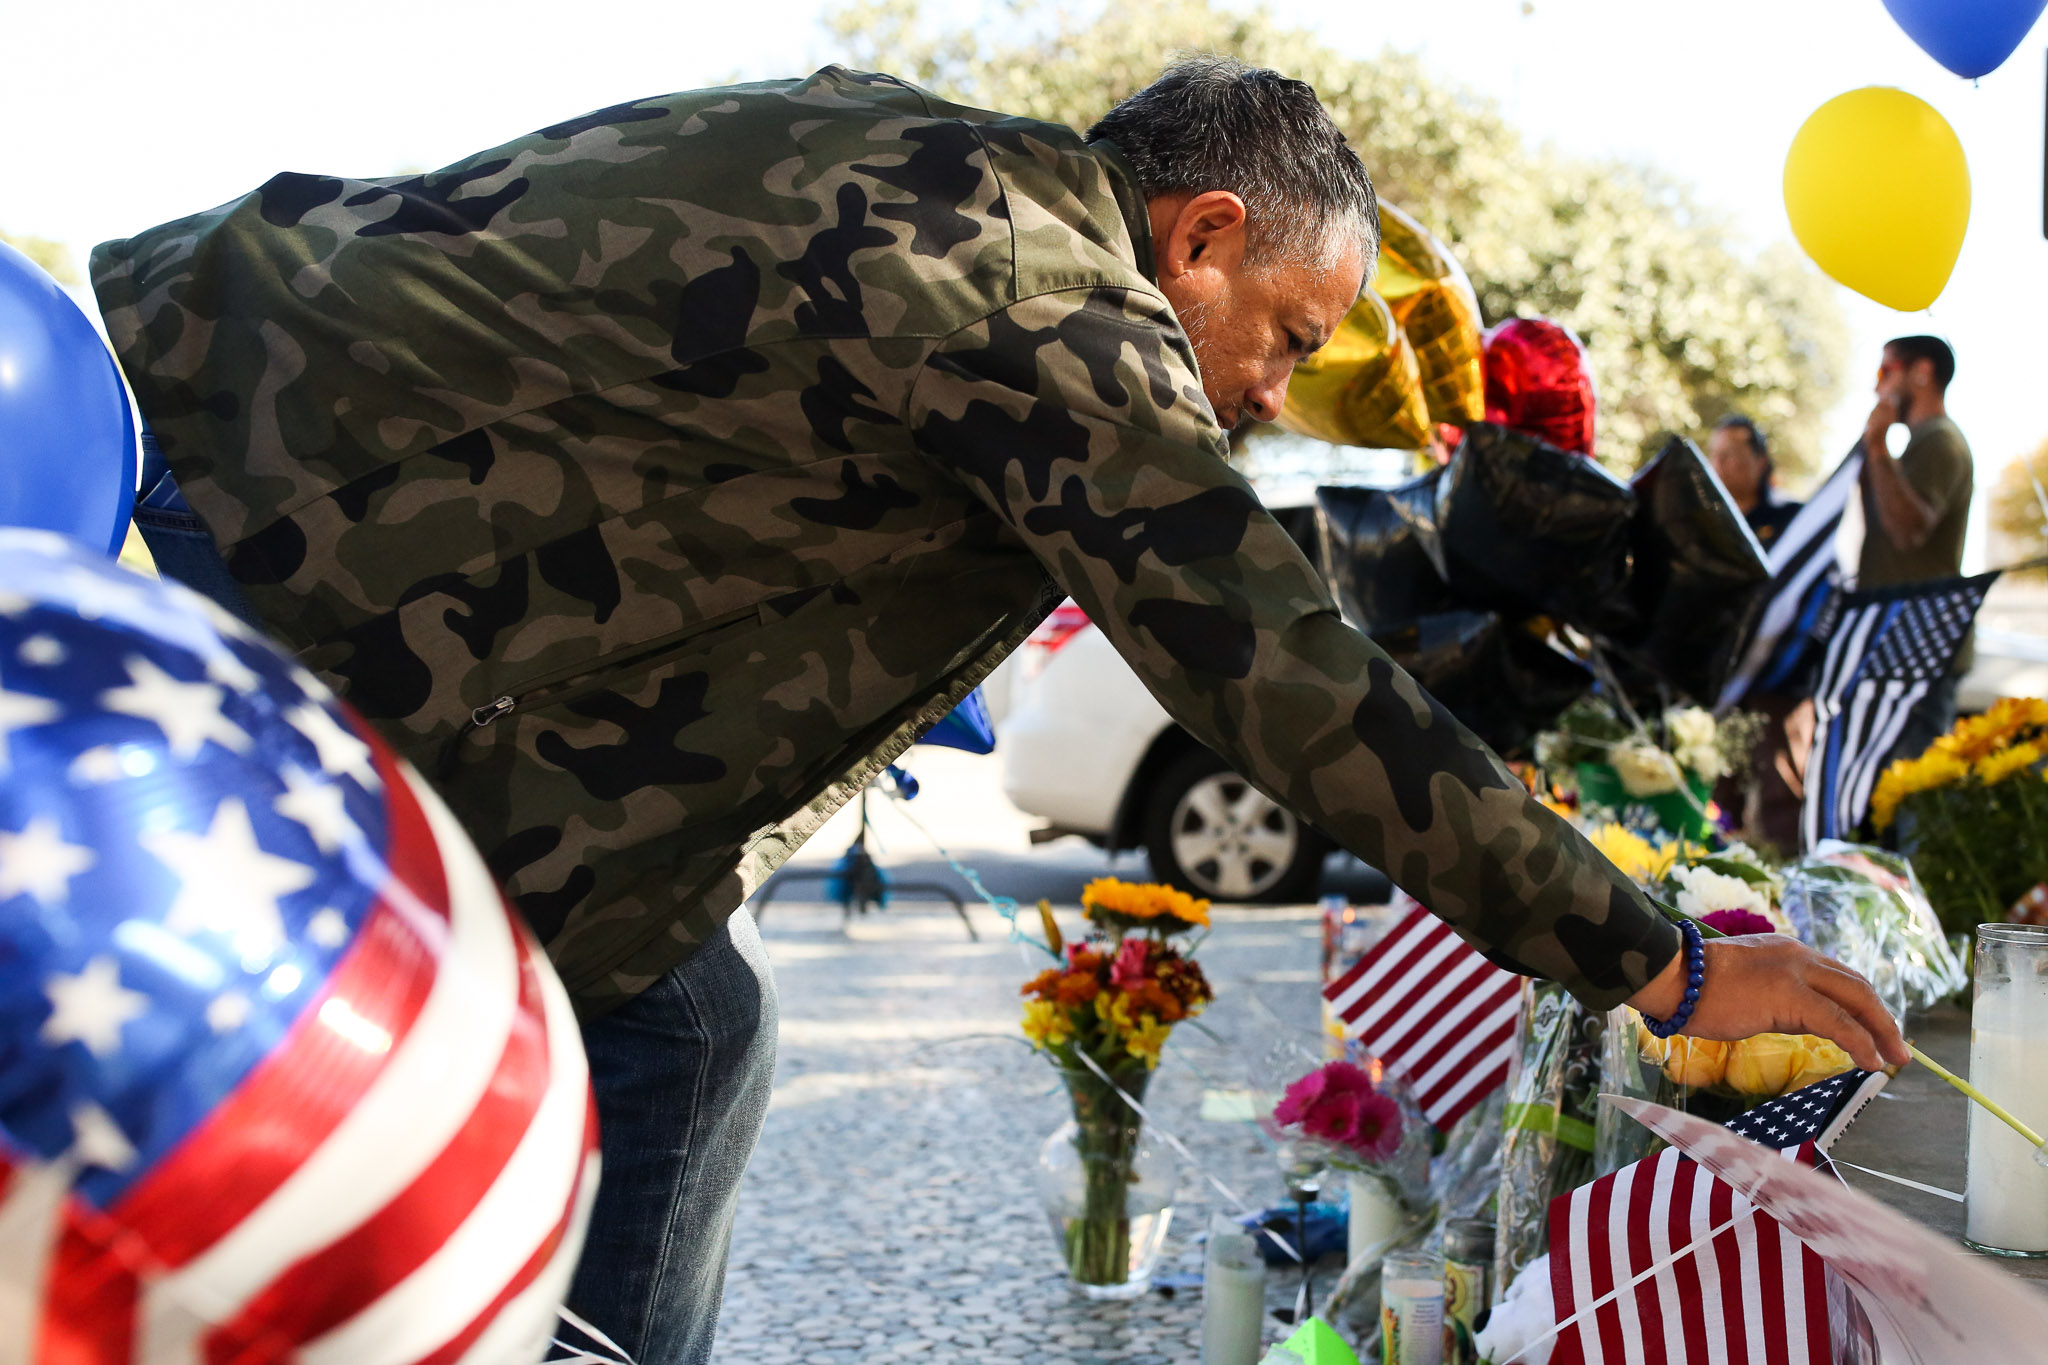 Retired San Antonio Police Officer James Flores places a single flower along with other memorial items in front of the Public Safety Headquarters.